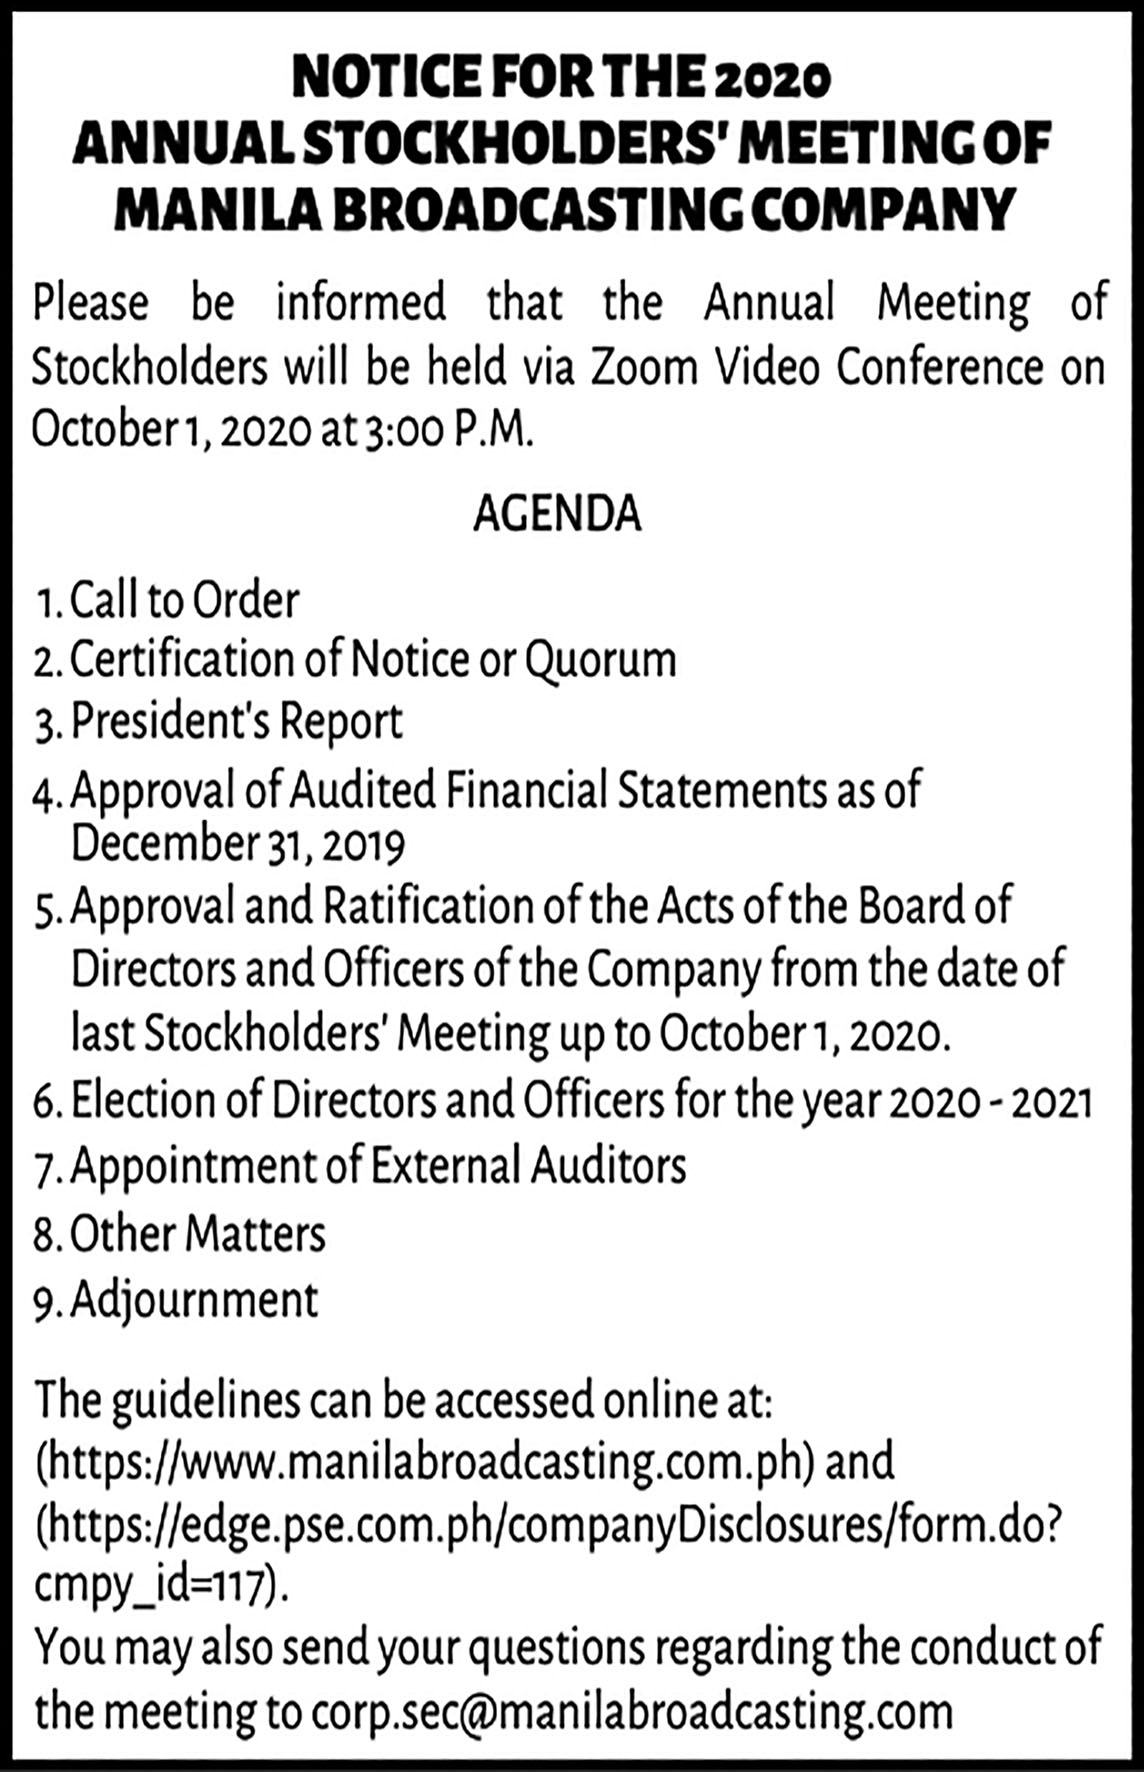 SEP 14 Notice of ASM 3x151 1 - Manila Broadcasting Company announces schedule of Annual Stockholders' Meeting